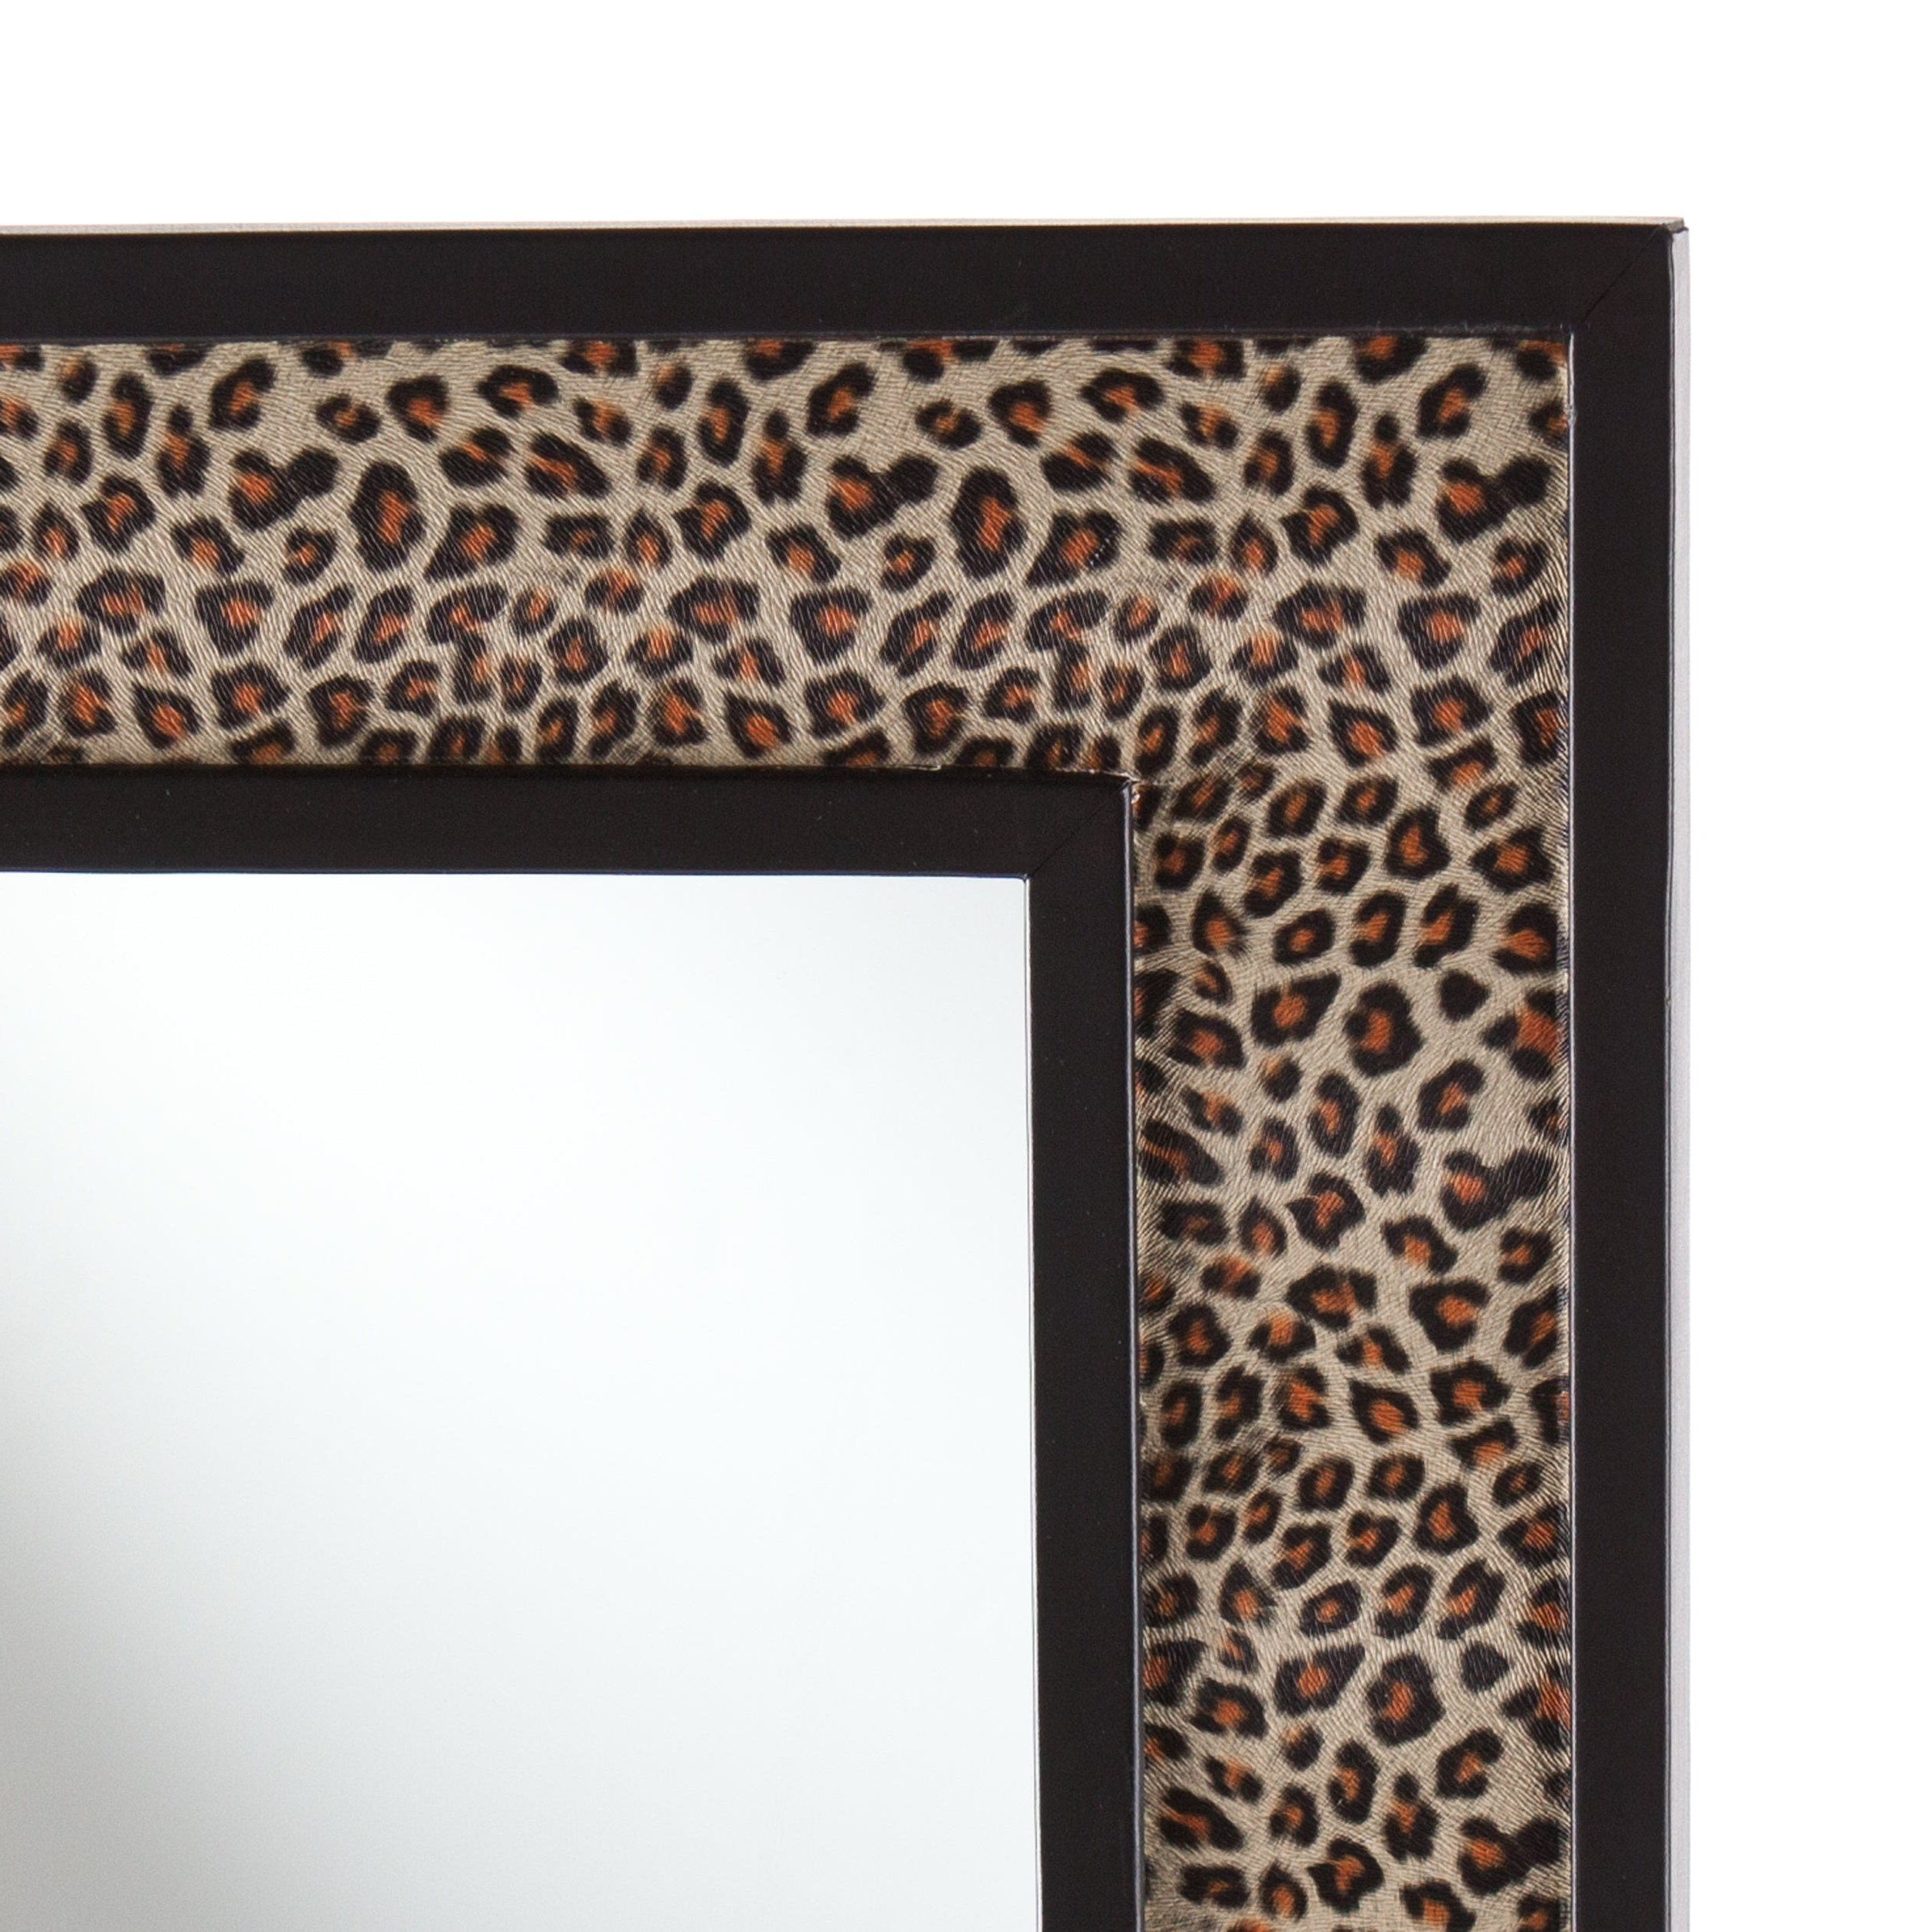 Harper Blvd Pavia Leopard Animal Print Decorative Wall Mirror Throughout Most Up To Date Leopard Wall Mirrors (Gallery 6 of 20)